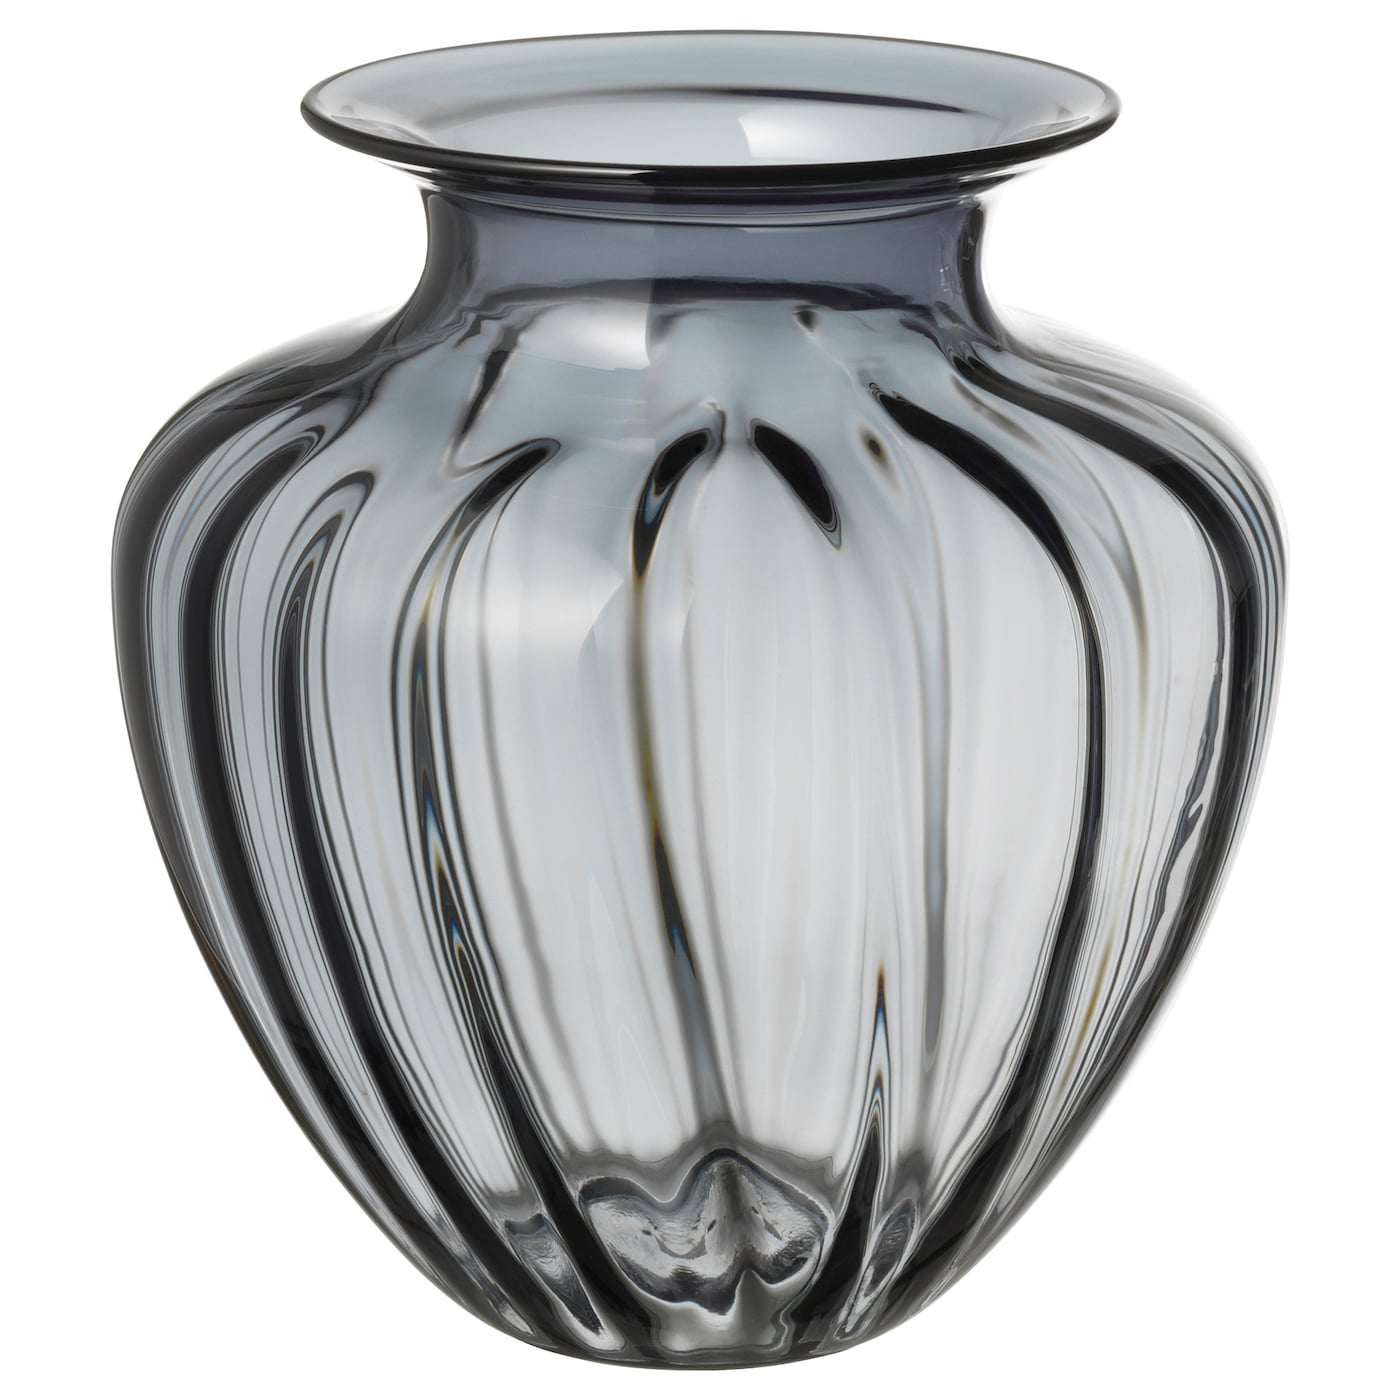 IKEA TONSÄTTA vase Use the vase with flowers or alone, as a beautiful object in its own right.